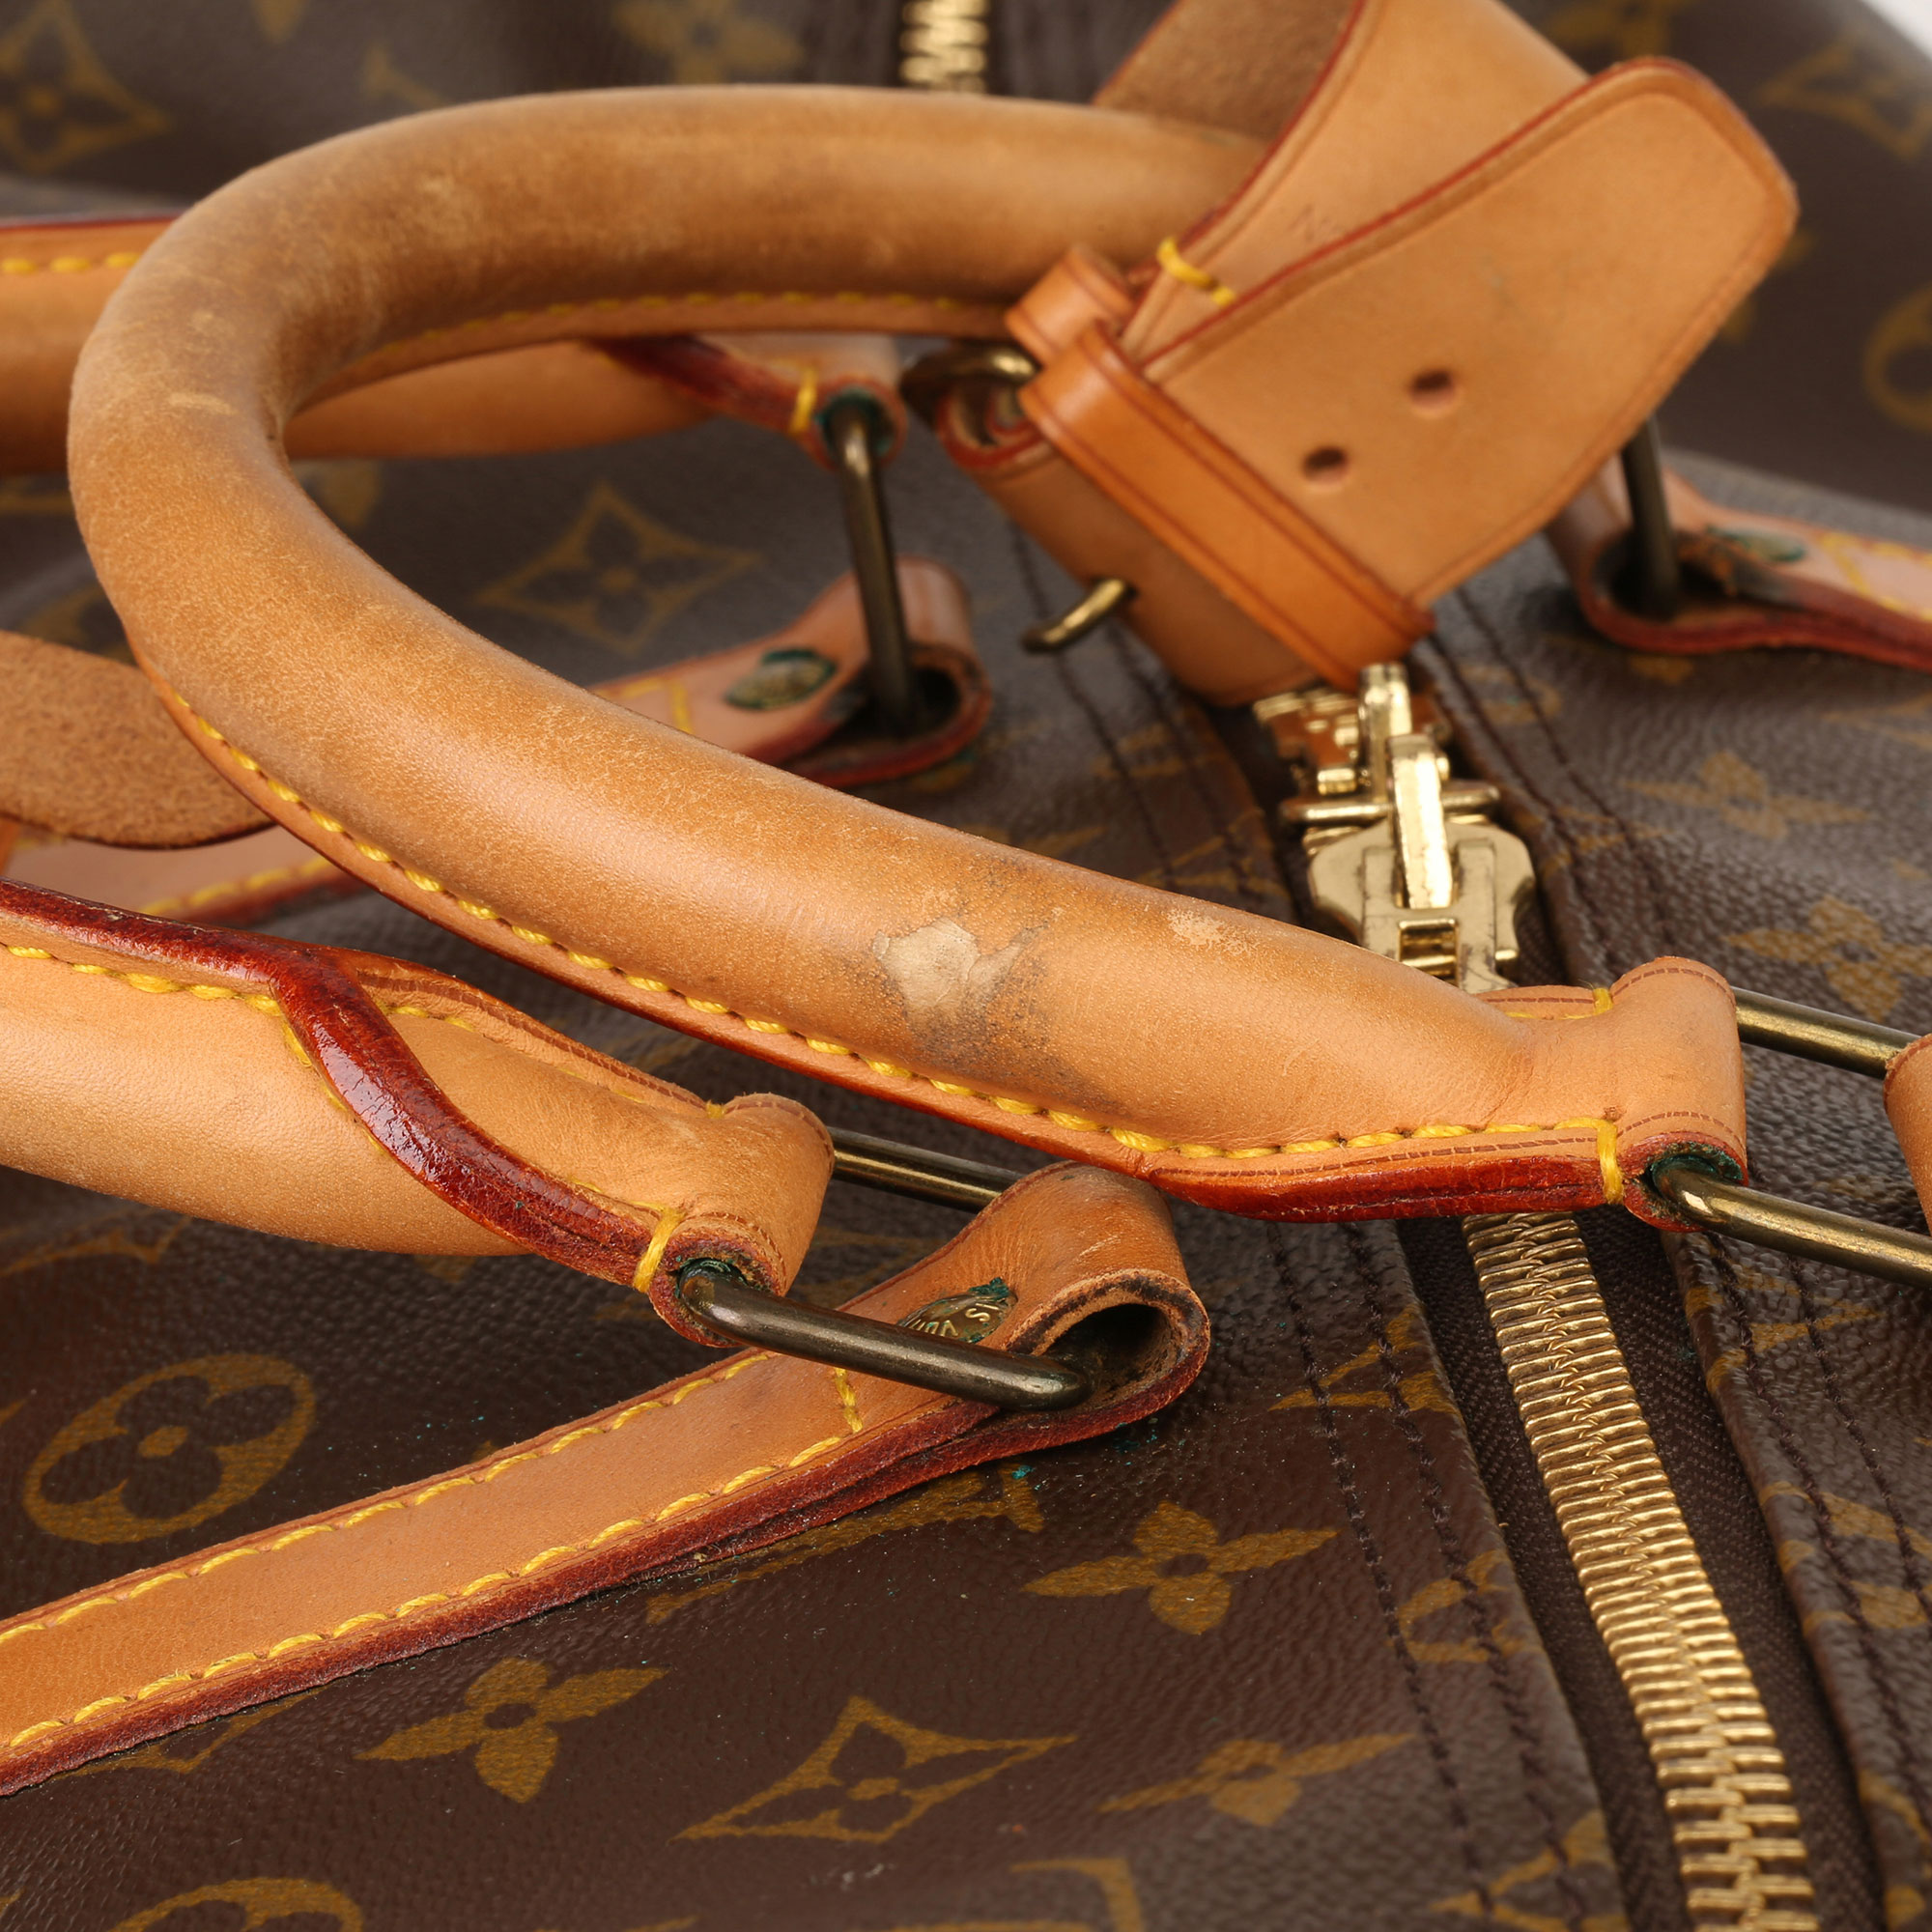 Louis Vuitton Brown Monogram Coated Canvas & Vachetta Leather Vintage Keepall 55 - Image 5 of 14